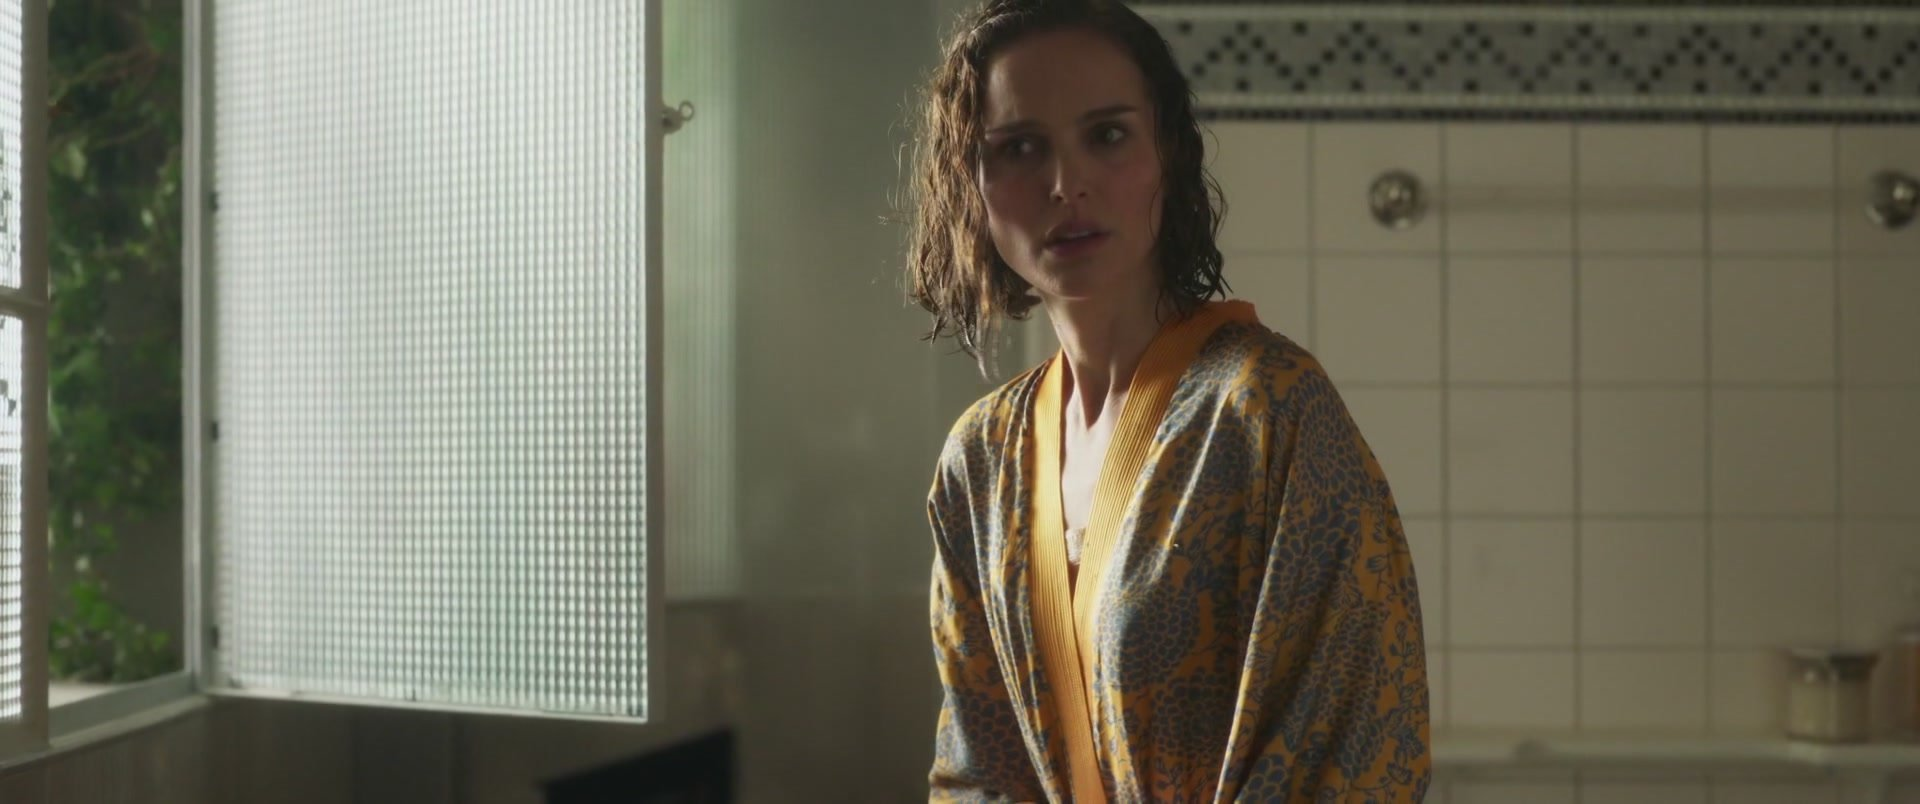 Qweryuio you natalie portman gets naked clip that made